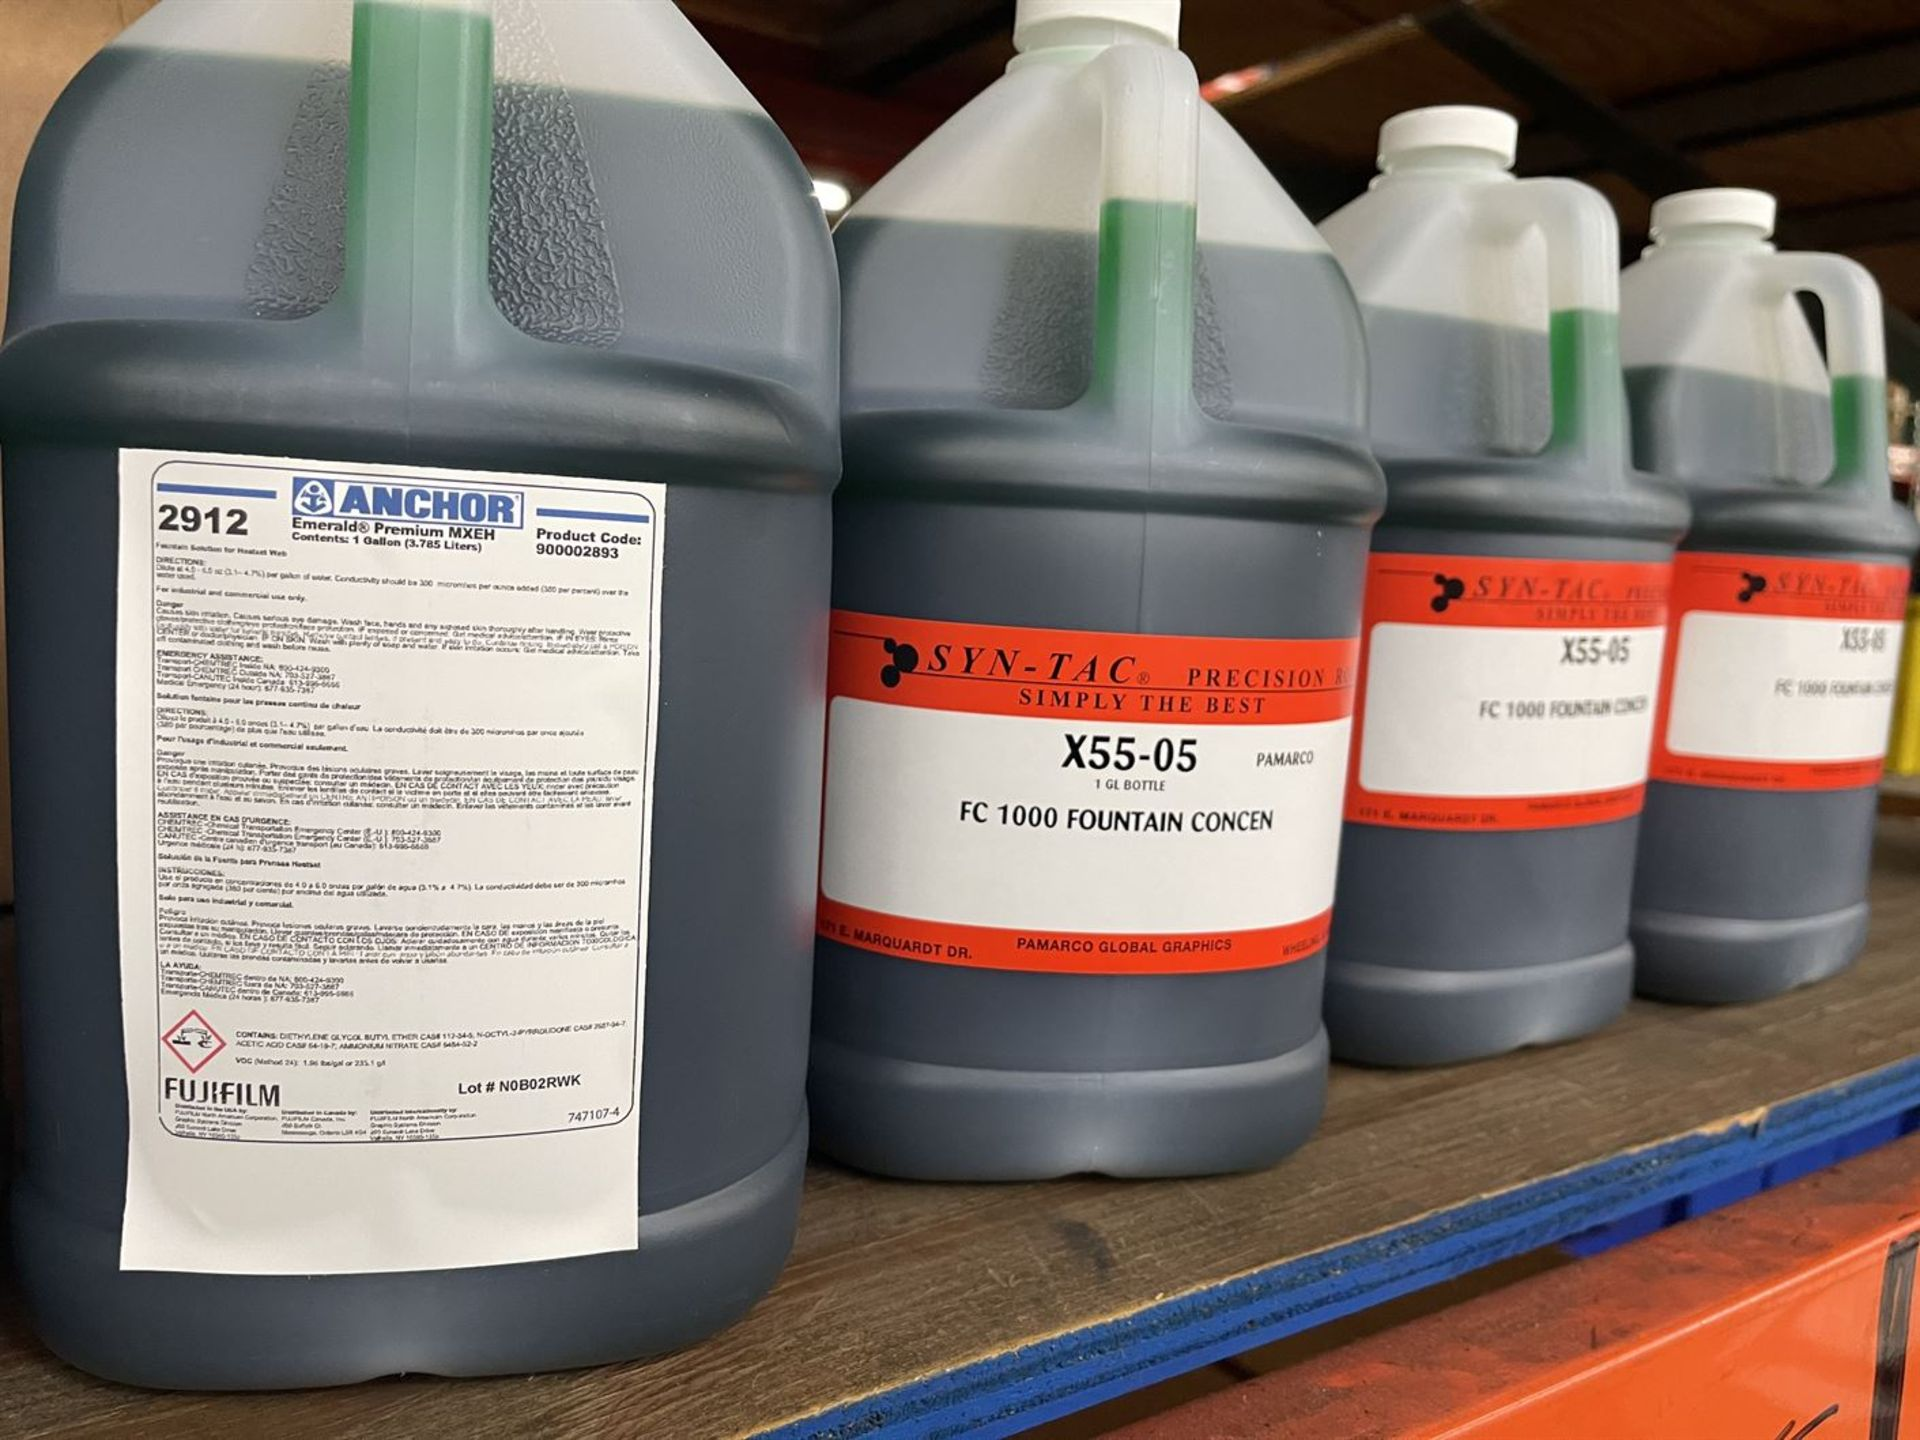 Lot of Assorted Printing Chemicals Including CMP Syn-Tac Pressroom Maintenance Kits, MP 2000 Poly - Image 5 of 5